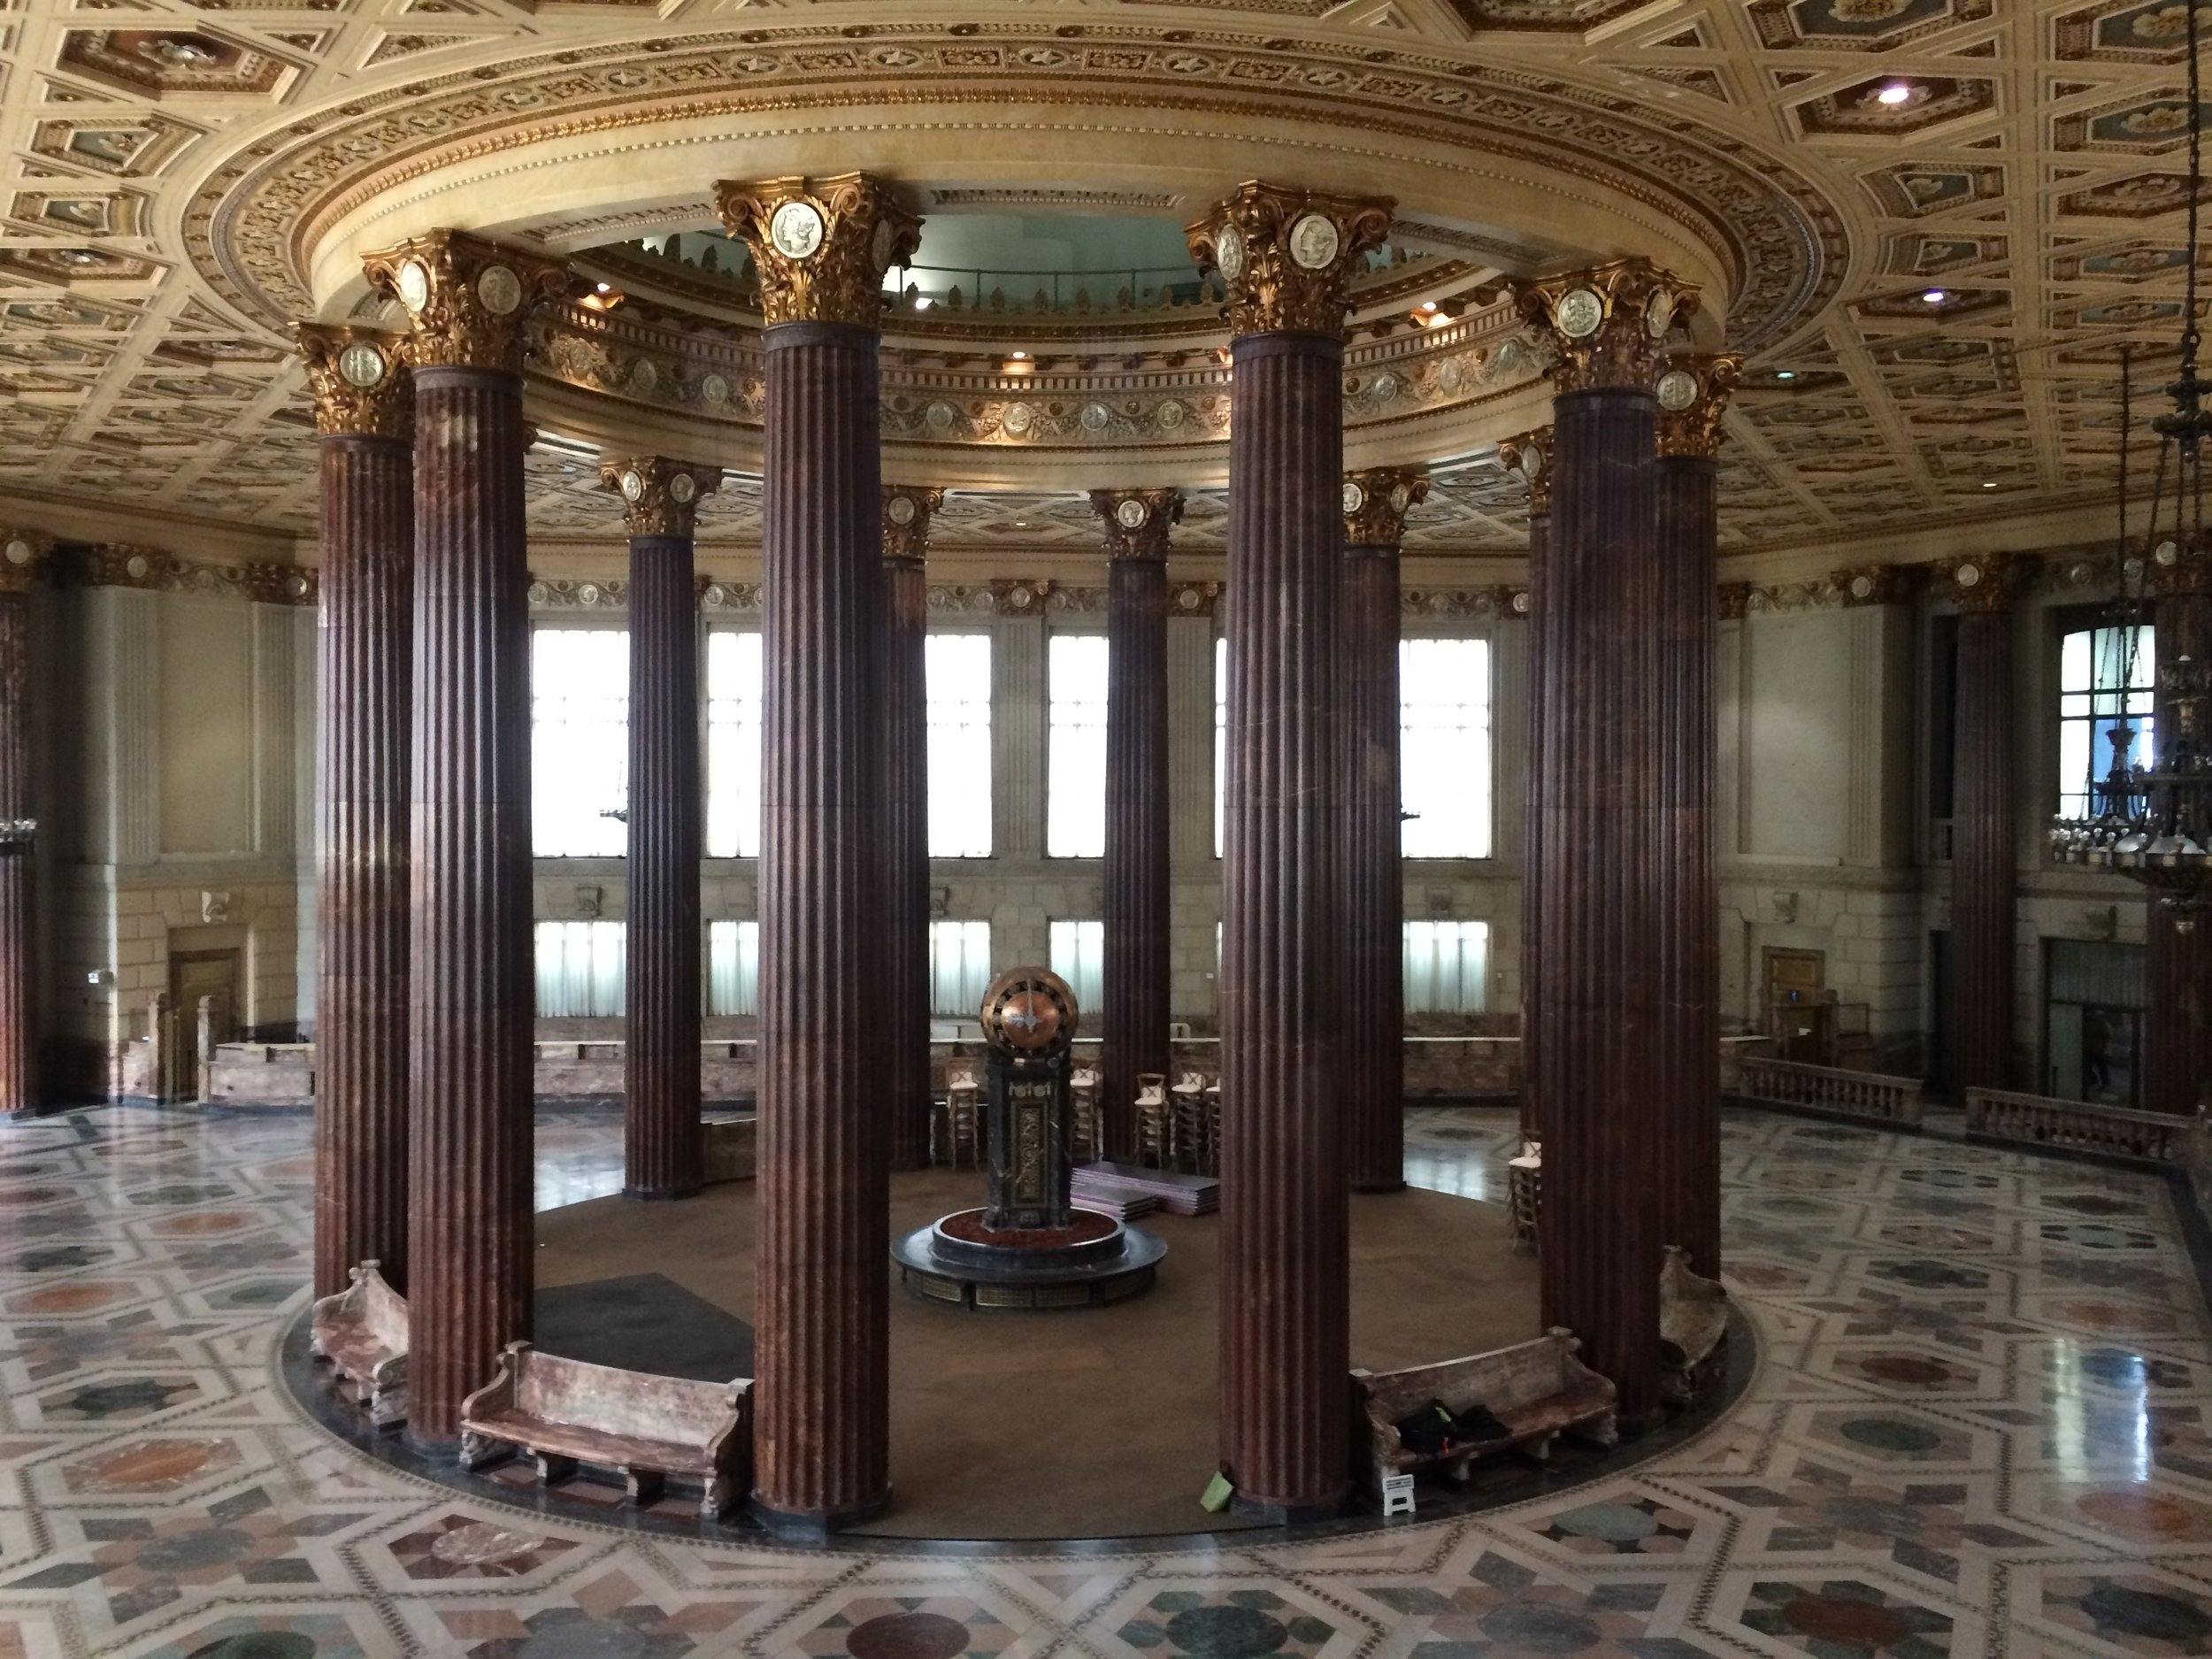 A view of the the rotunda from the second floor balcony.